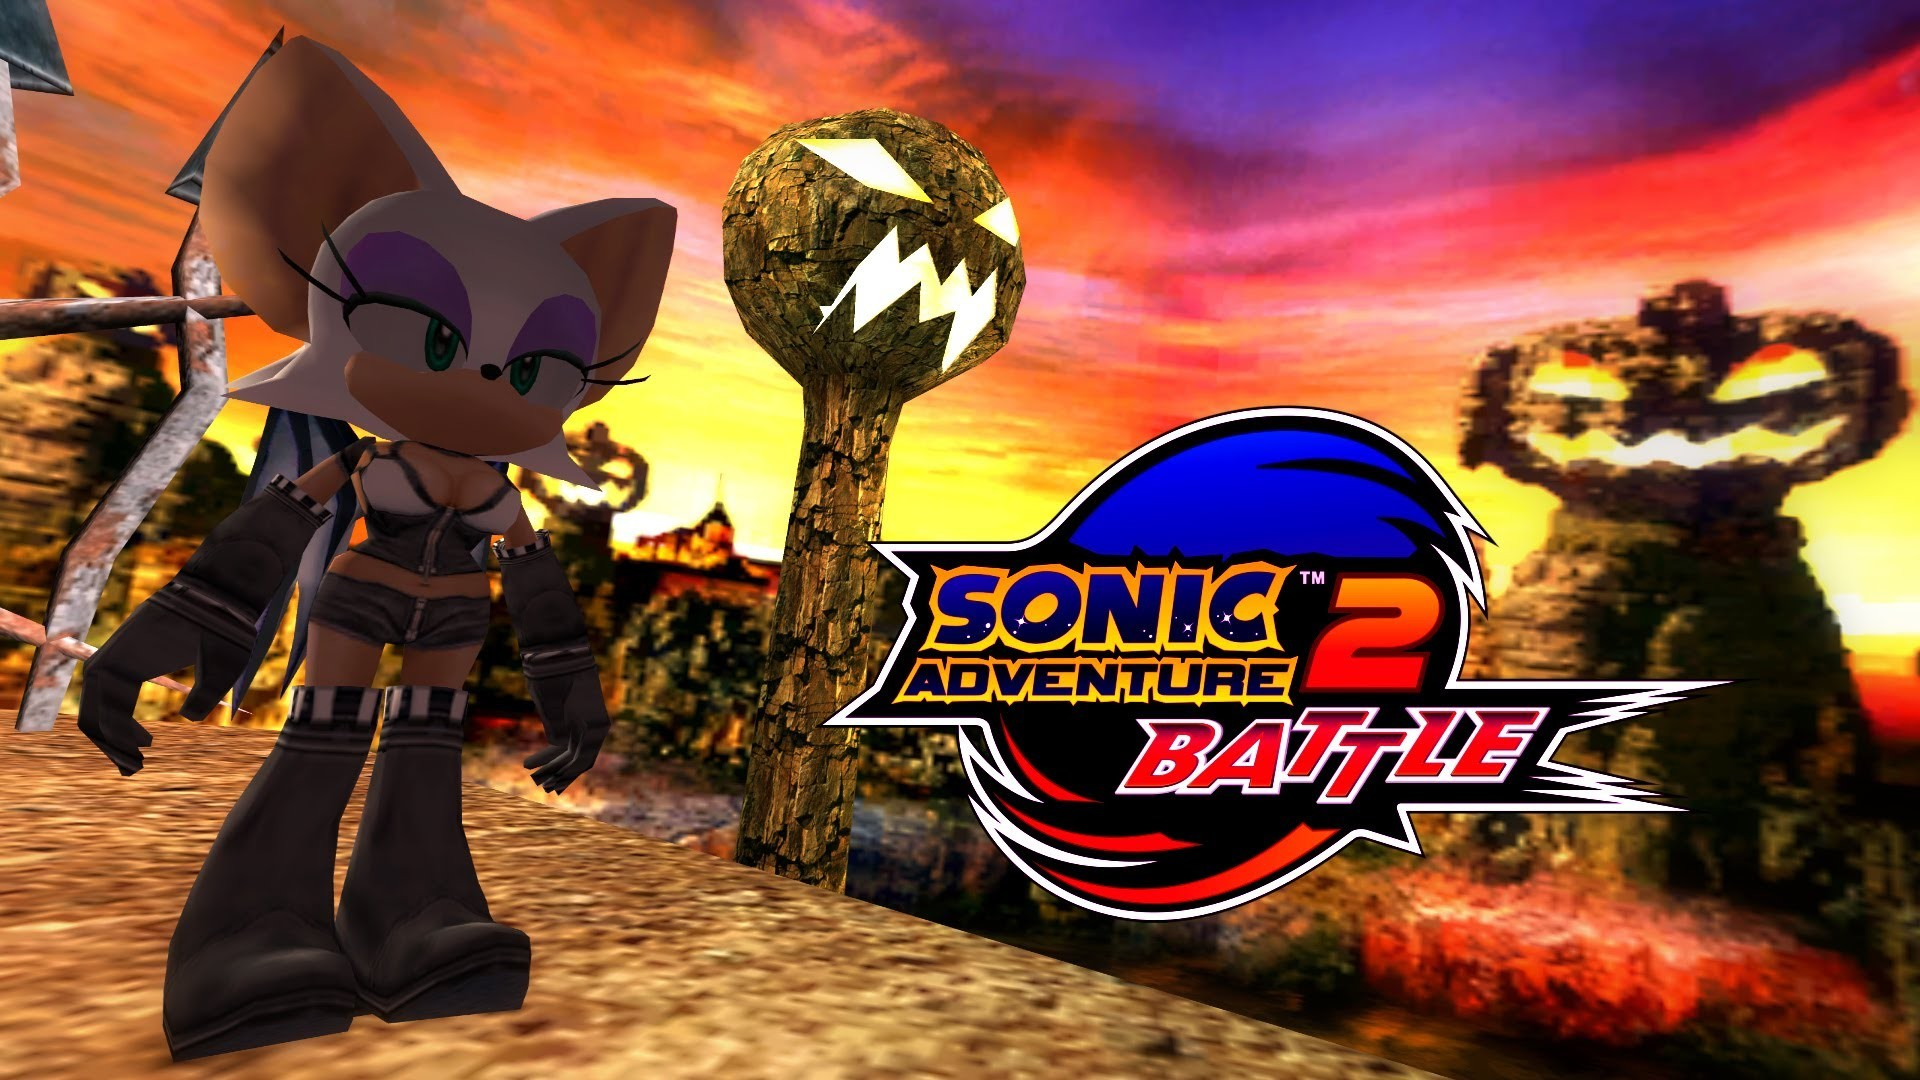 1920x1080 Sonic Adventure 2: Battle - Pumpkin Hill - Rouge (Alt. costume) [REAL Full  HD, Widescreen] 60 FPS - YouTube